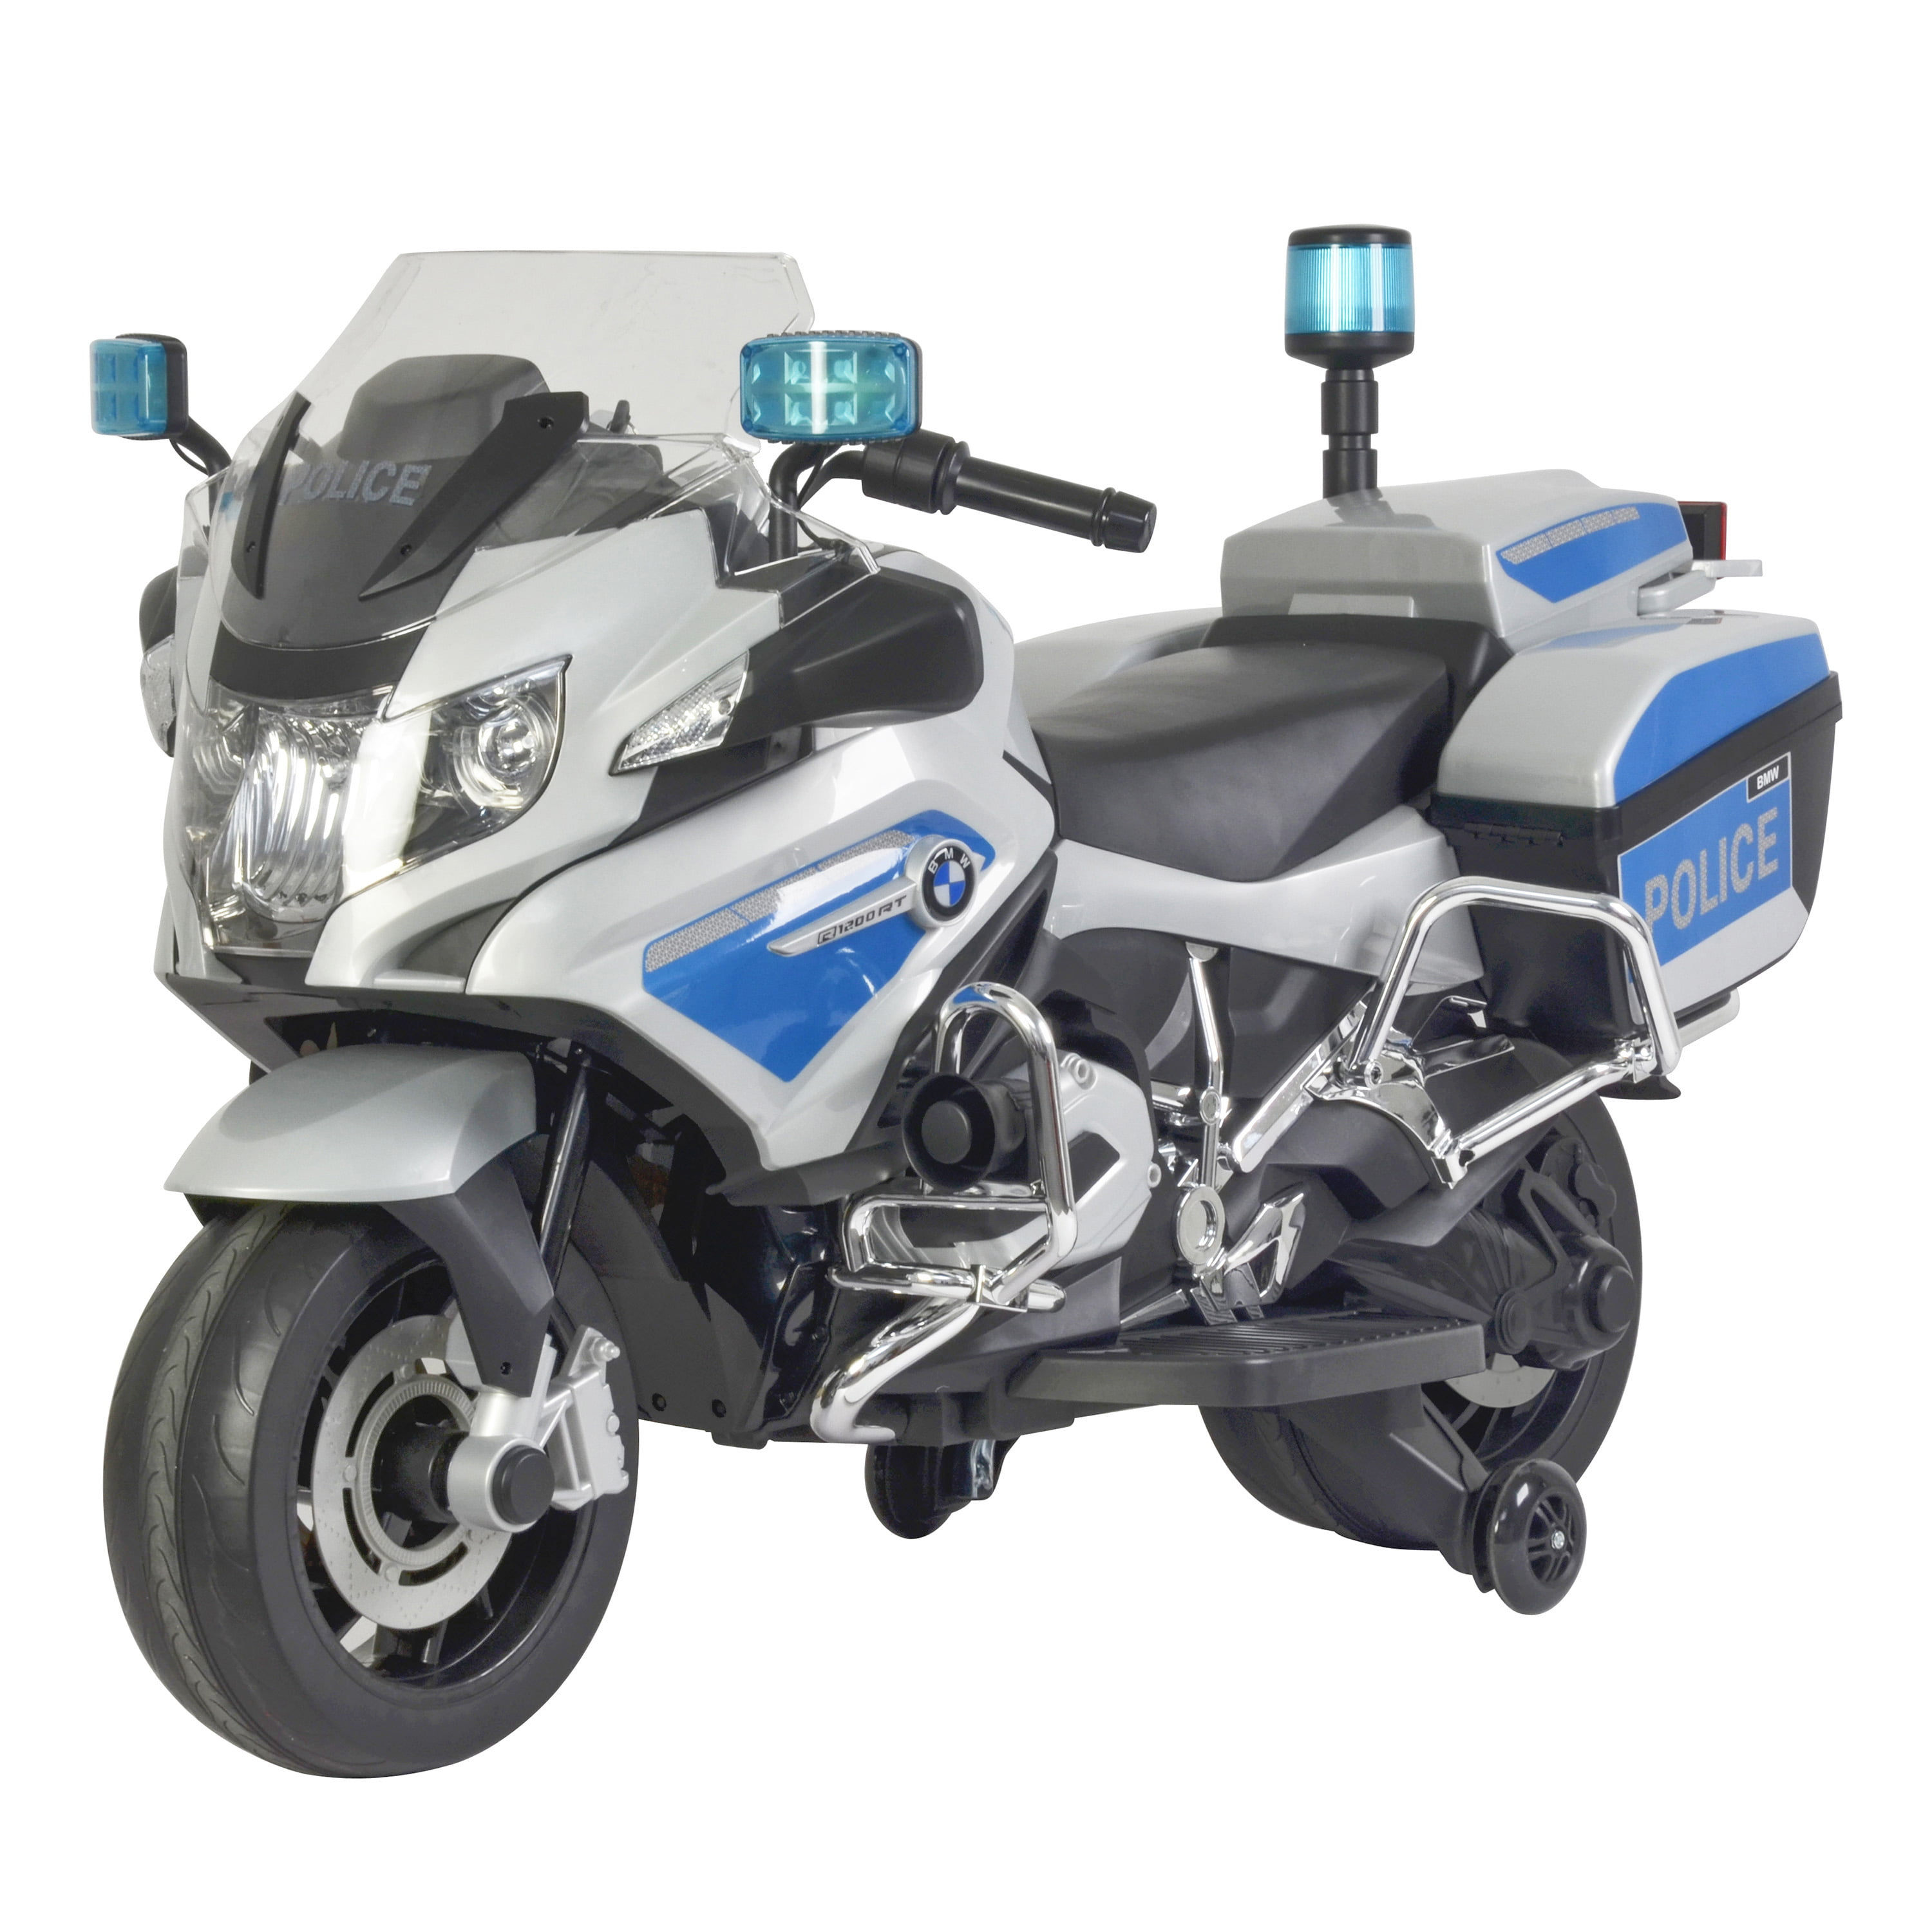 Kid Motorz BMW Police Motorcycle in White Light Blue (12V) by National Products Limited